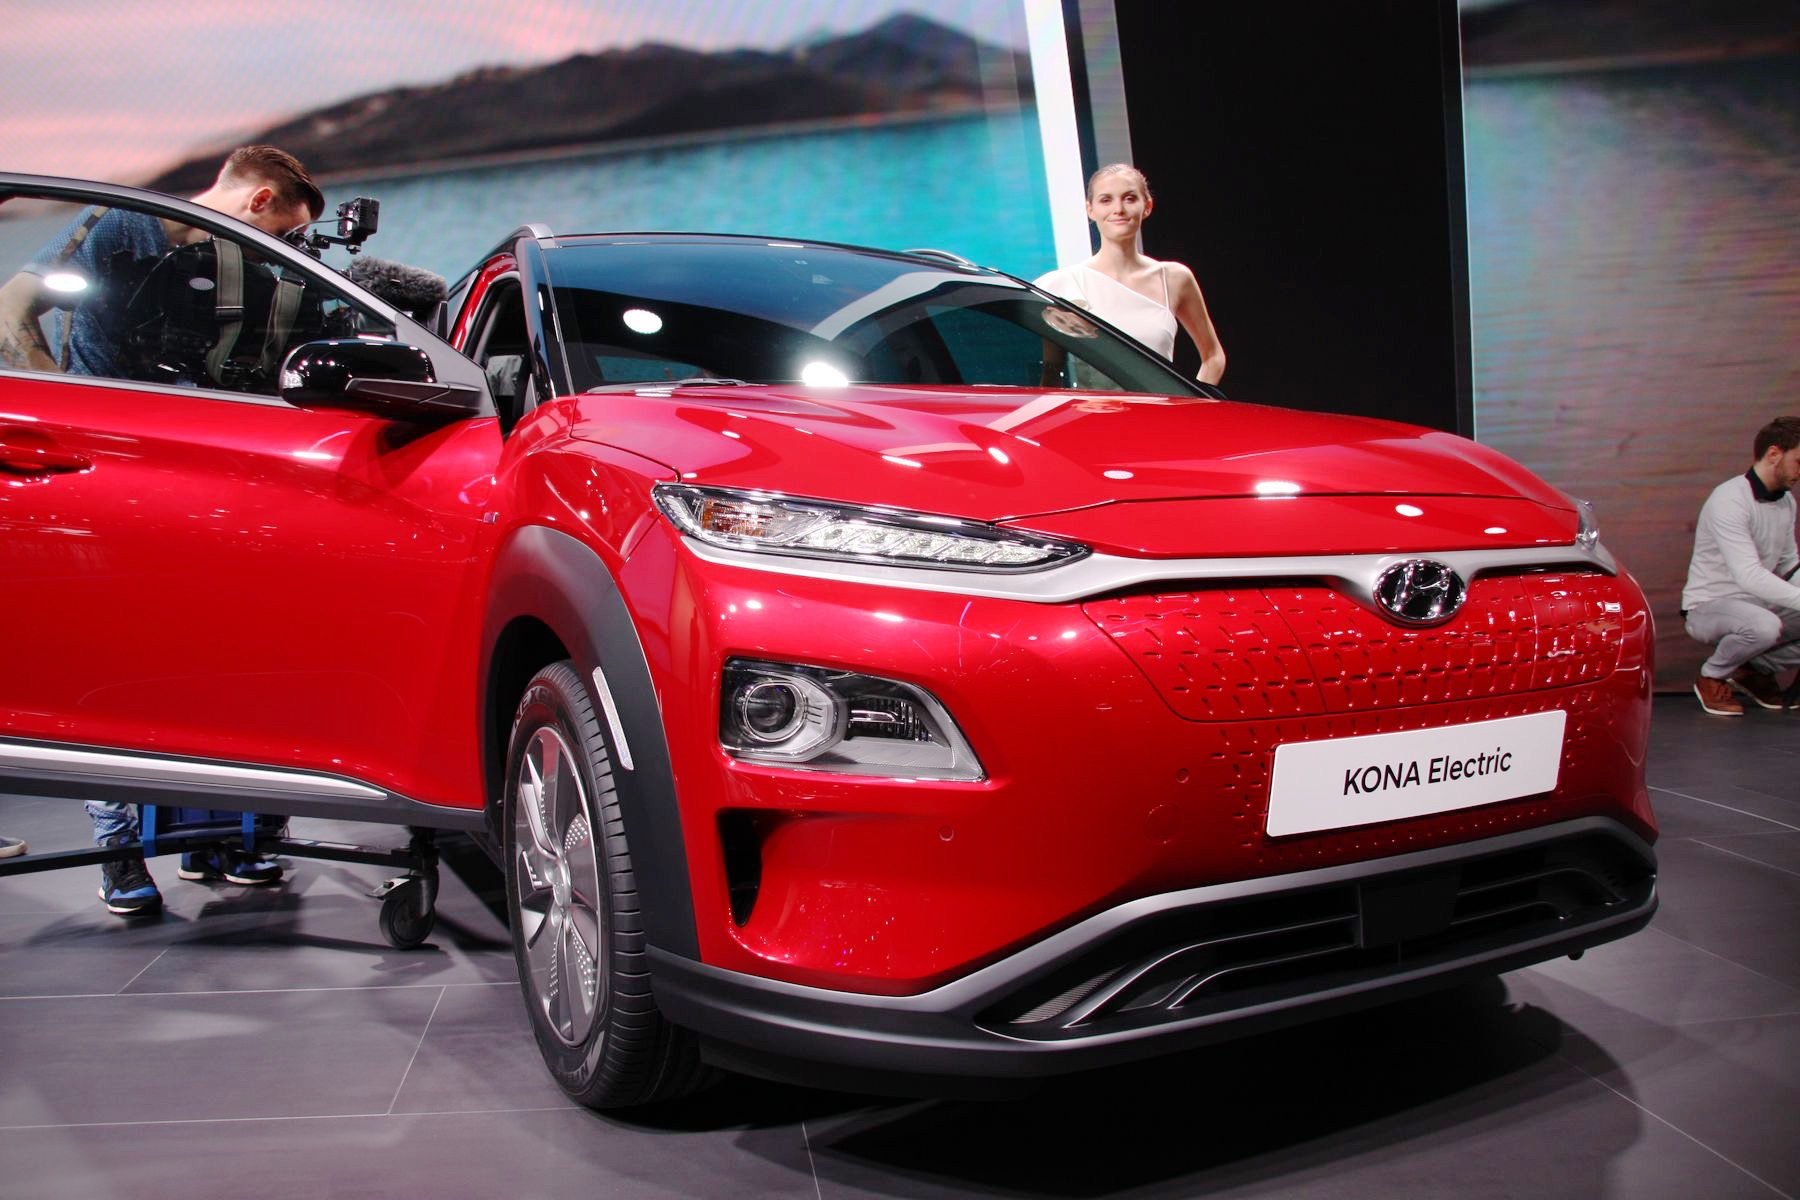 hyundai kona lectrique le suv grande autonomie d voil officiellement au salon de gen ve. Black Bedroom Furniture Sets. Home Design Ideas